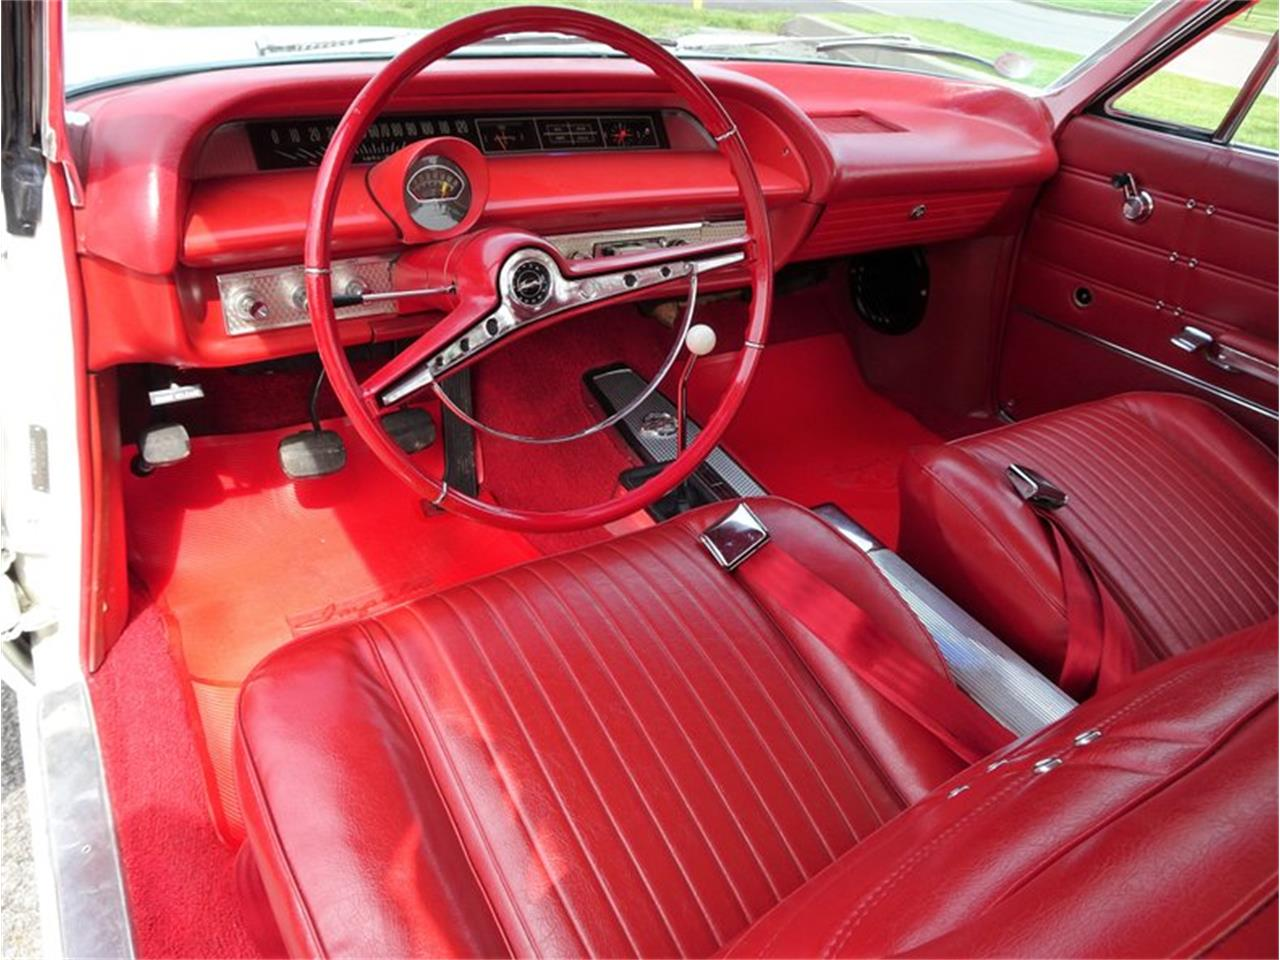 Large Picture of Classic '63 Impala Auction Vehicle Offered by Saratoga Auto Auction - R1AQ